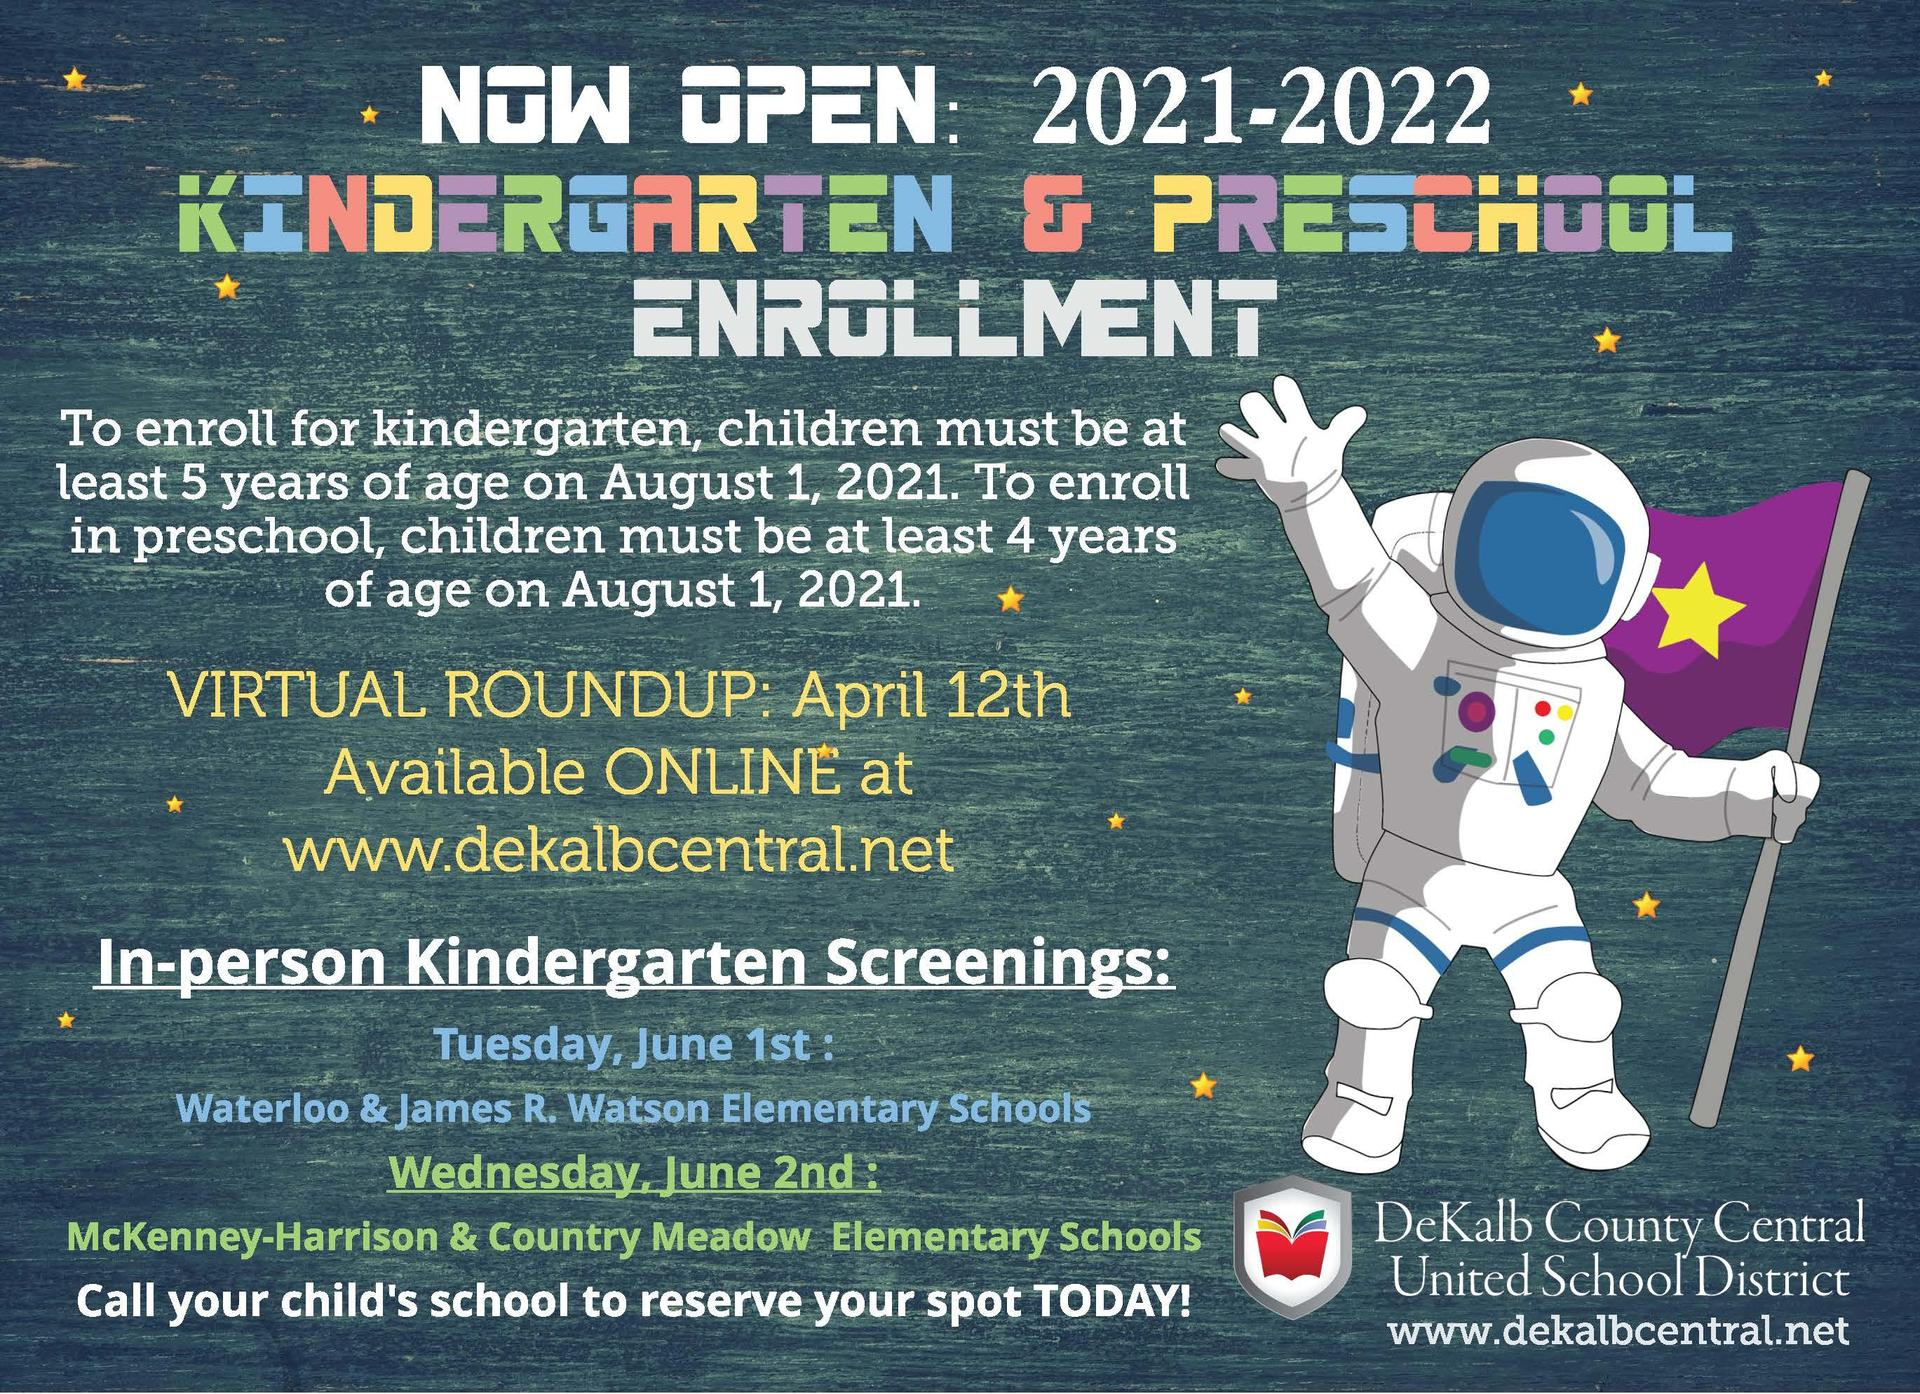 Kindergarten & Preschool Enrollment Information